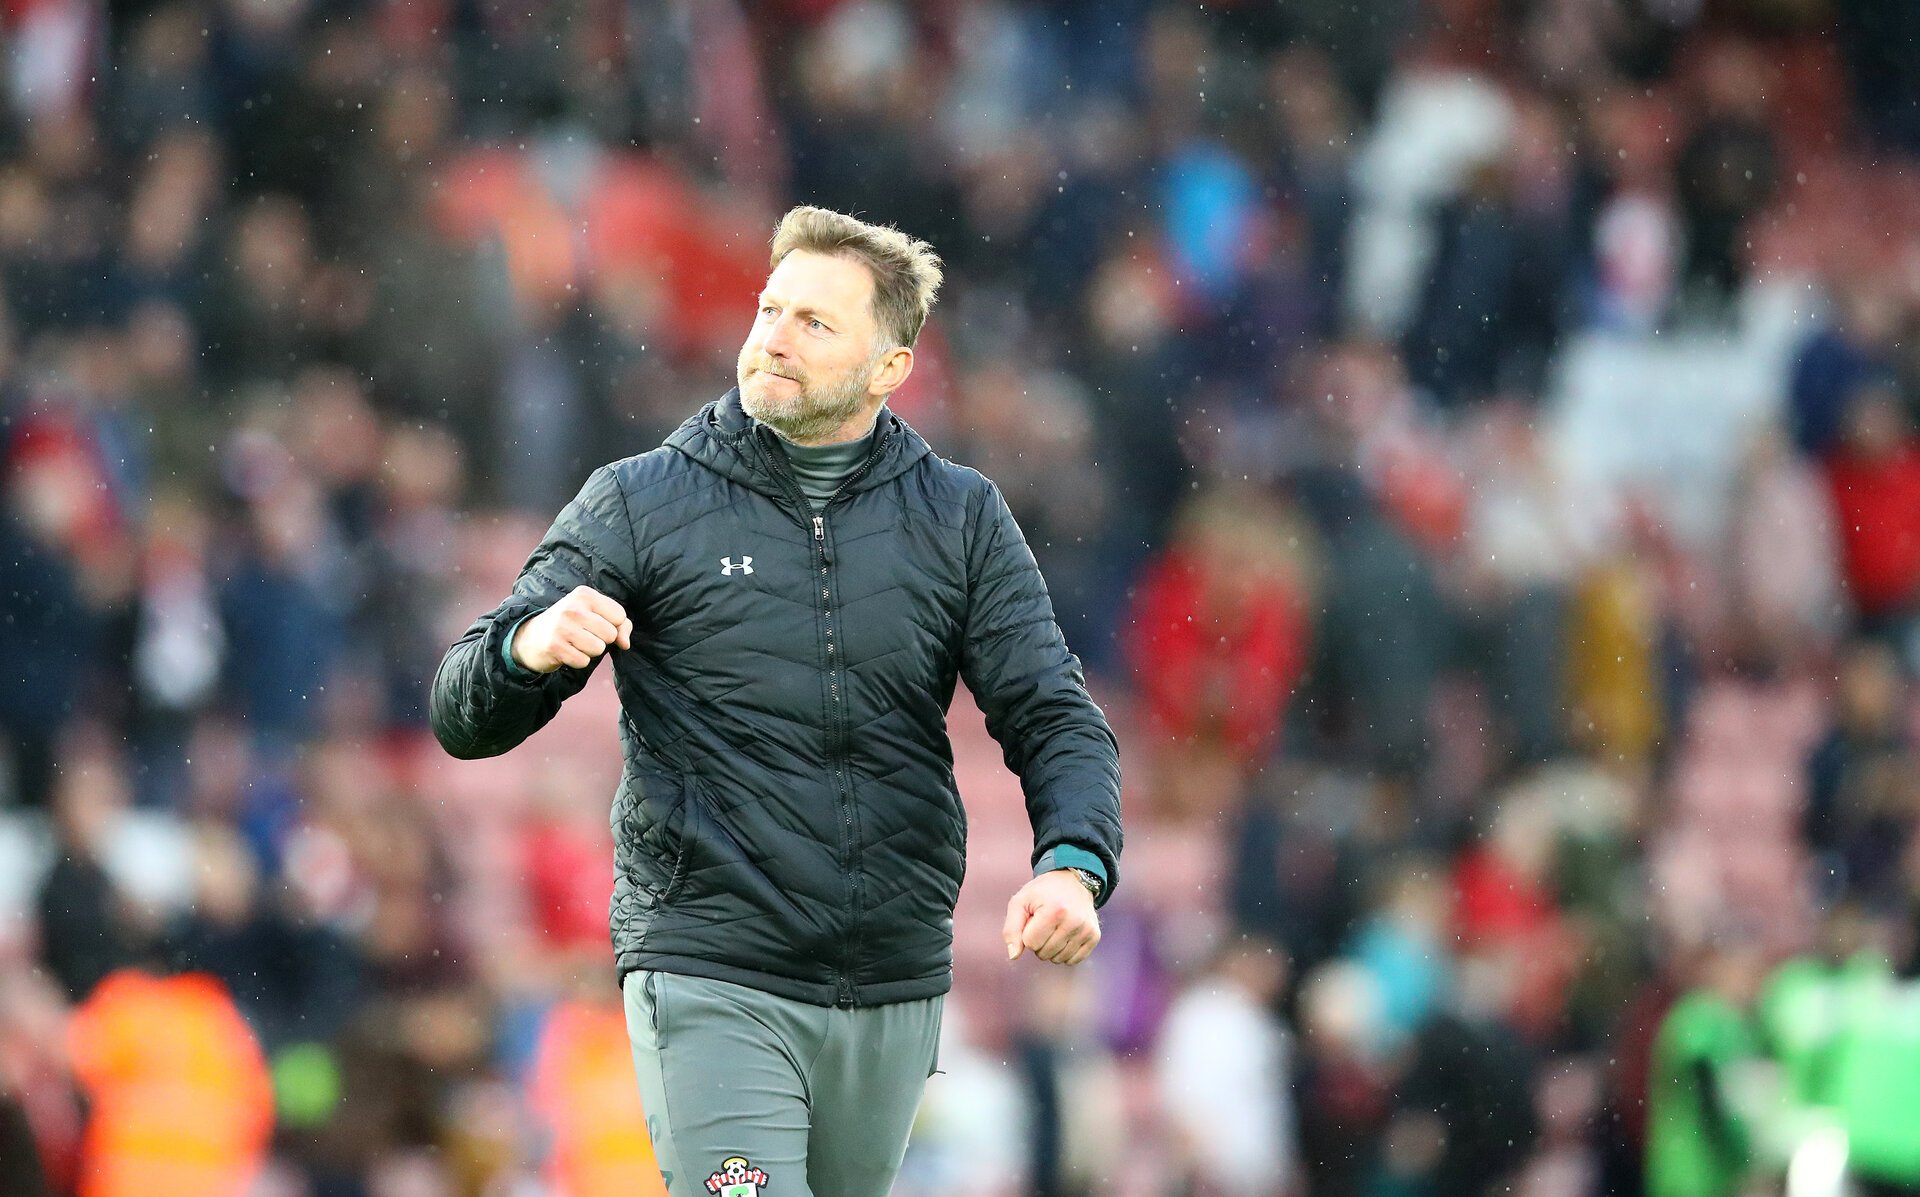 SOUTHAMPTON, ENGLAND - FEBRUARY 22: Ralph Hasenhuttl of Southampton celebrates at the final whistle during the Premier League match between Southampton FC and Aston Villa at St Mary's Stadium on February 22, 2020 in Southampton, United Kingdom. (Photo by Matt Watson/Southampton FC via Getty Images)